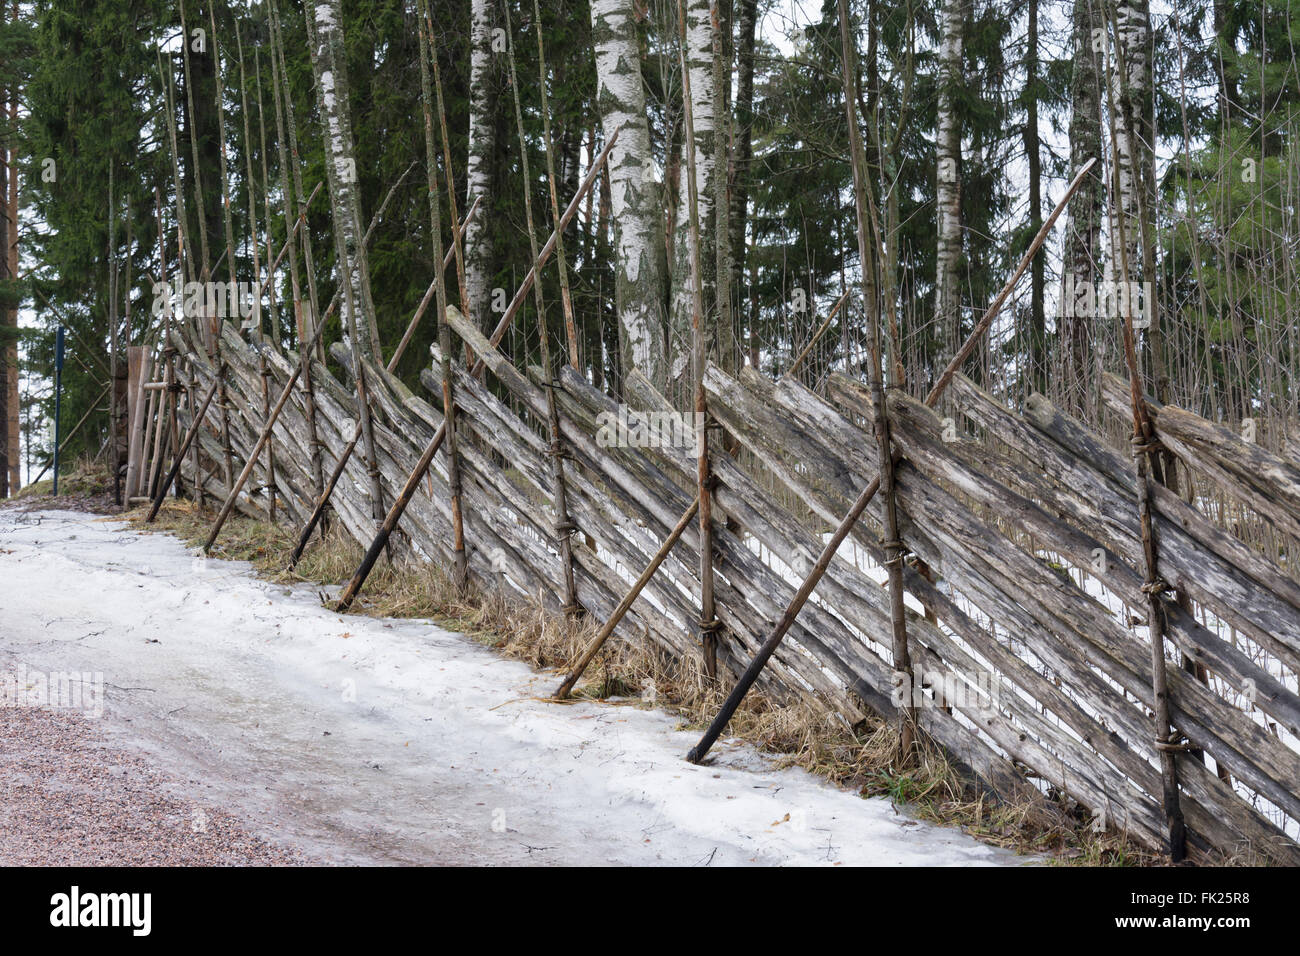 Traditional roundpole fence at Seurasaari Open-Air Museum - Stock Image